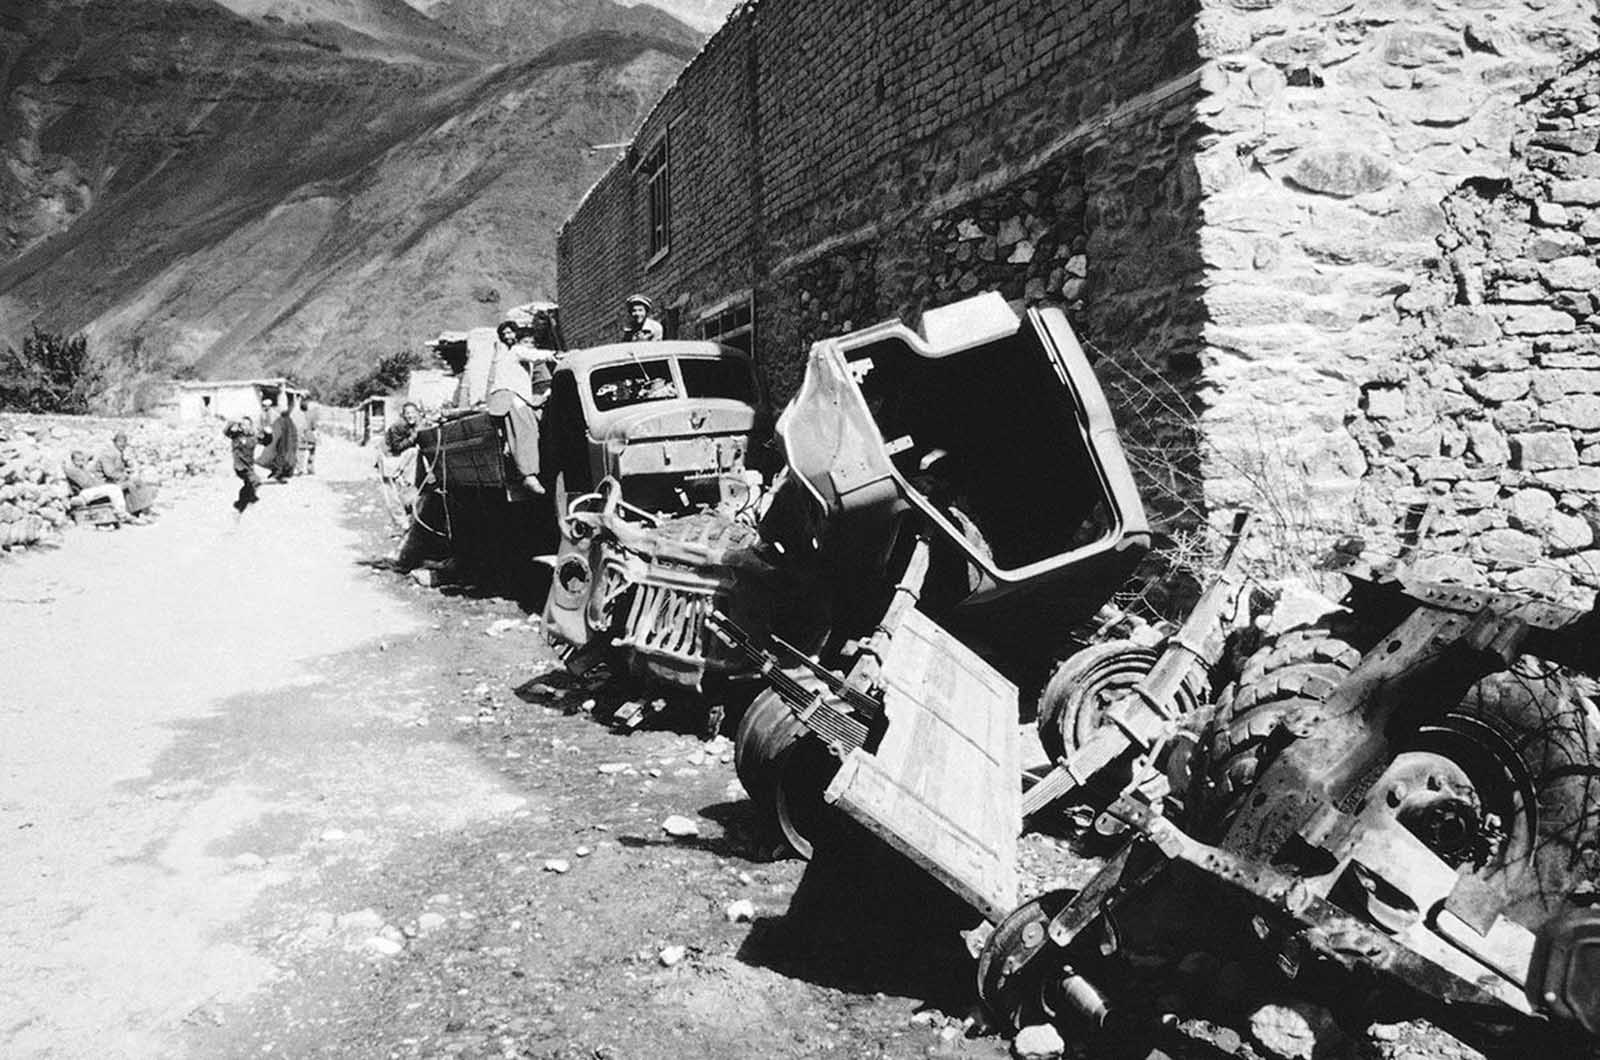 Wrecked Soviet vehicles are shoved alongside the street in the Panchir Valley village of Omarz in northeast Pakistan in February of 1984.